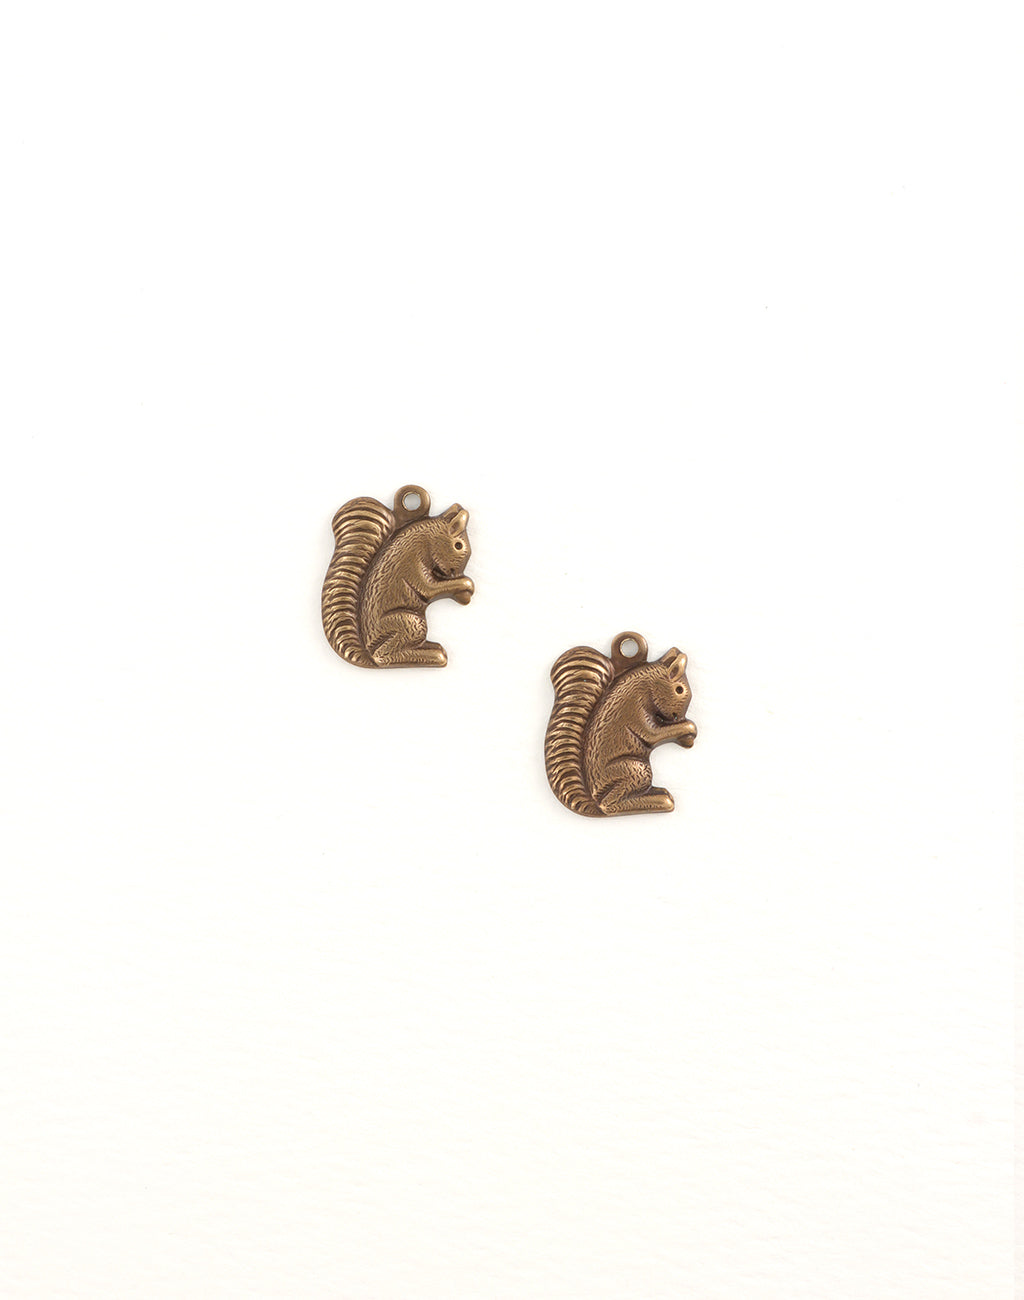 Squirrel, 17x13mm, (2pcs)